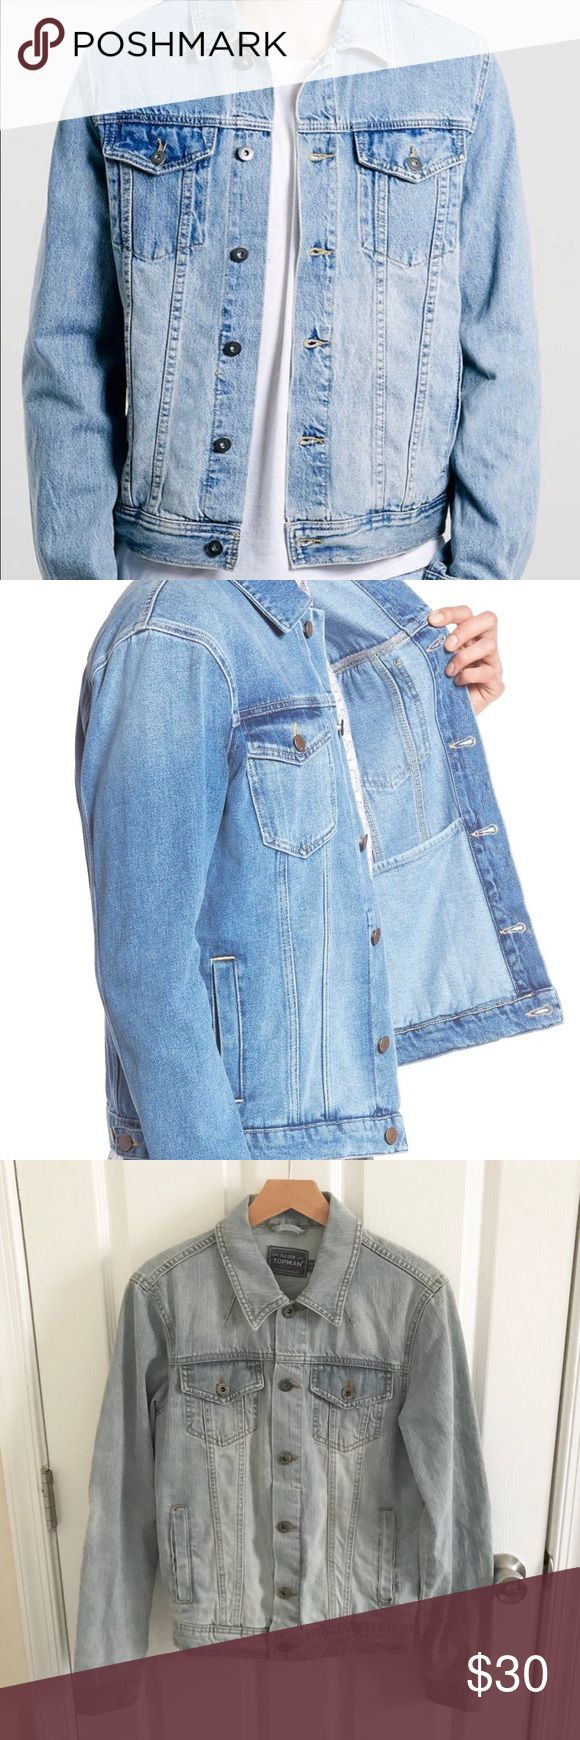 Topman Light Bleached Denim Jacket The color on this style varies. Please see my photo because the wash on one being sold is even lighter. Topman Jackets & Coats